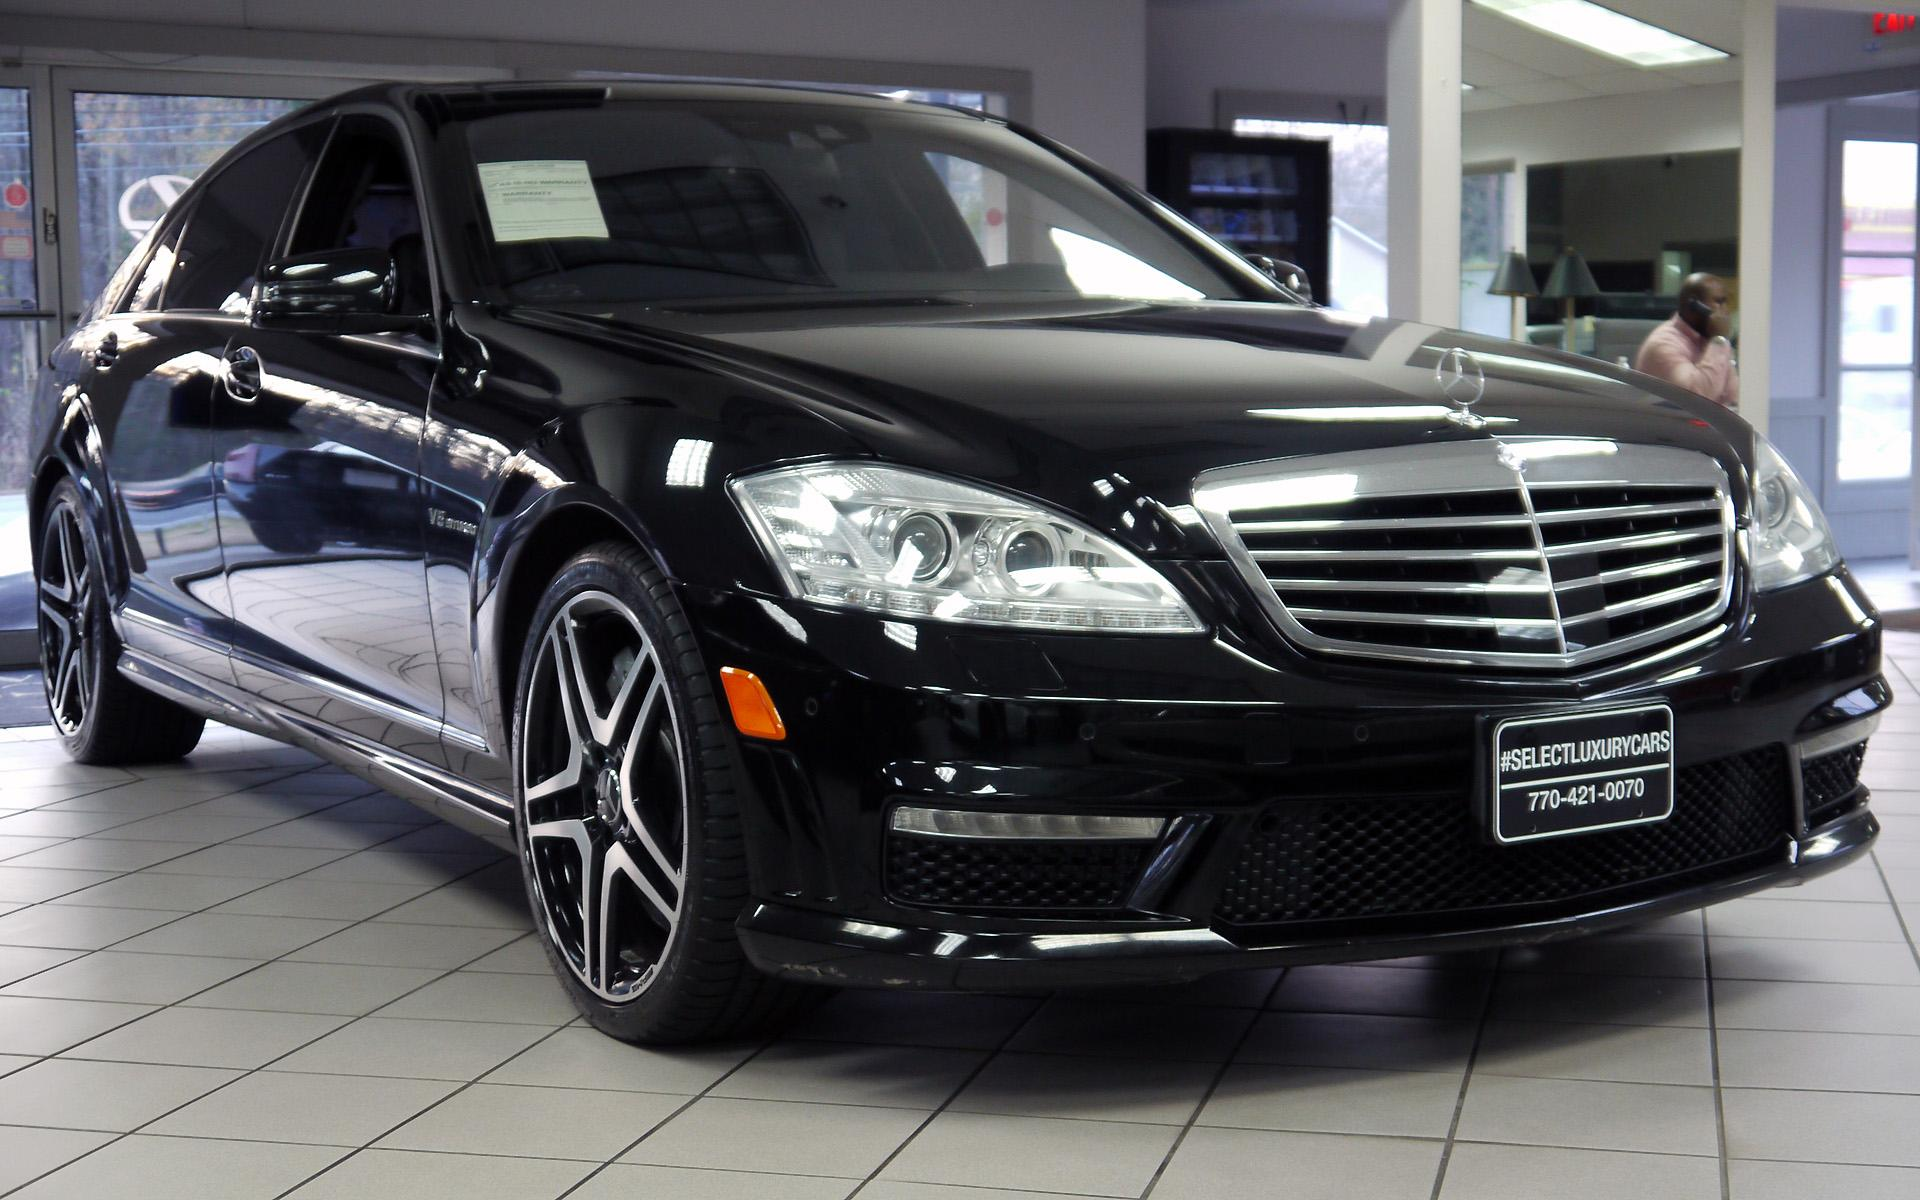 used 2012 mercedes benz s class s63 amg marietta ga. Black Bedroom Furniture Sets. Home Design Ideas